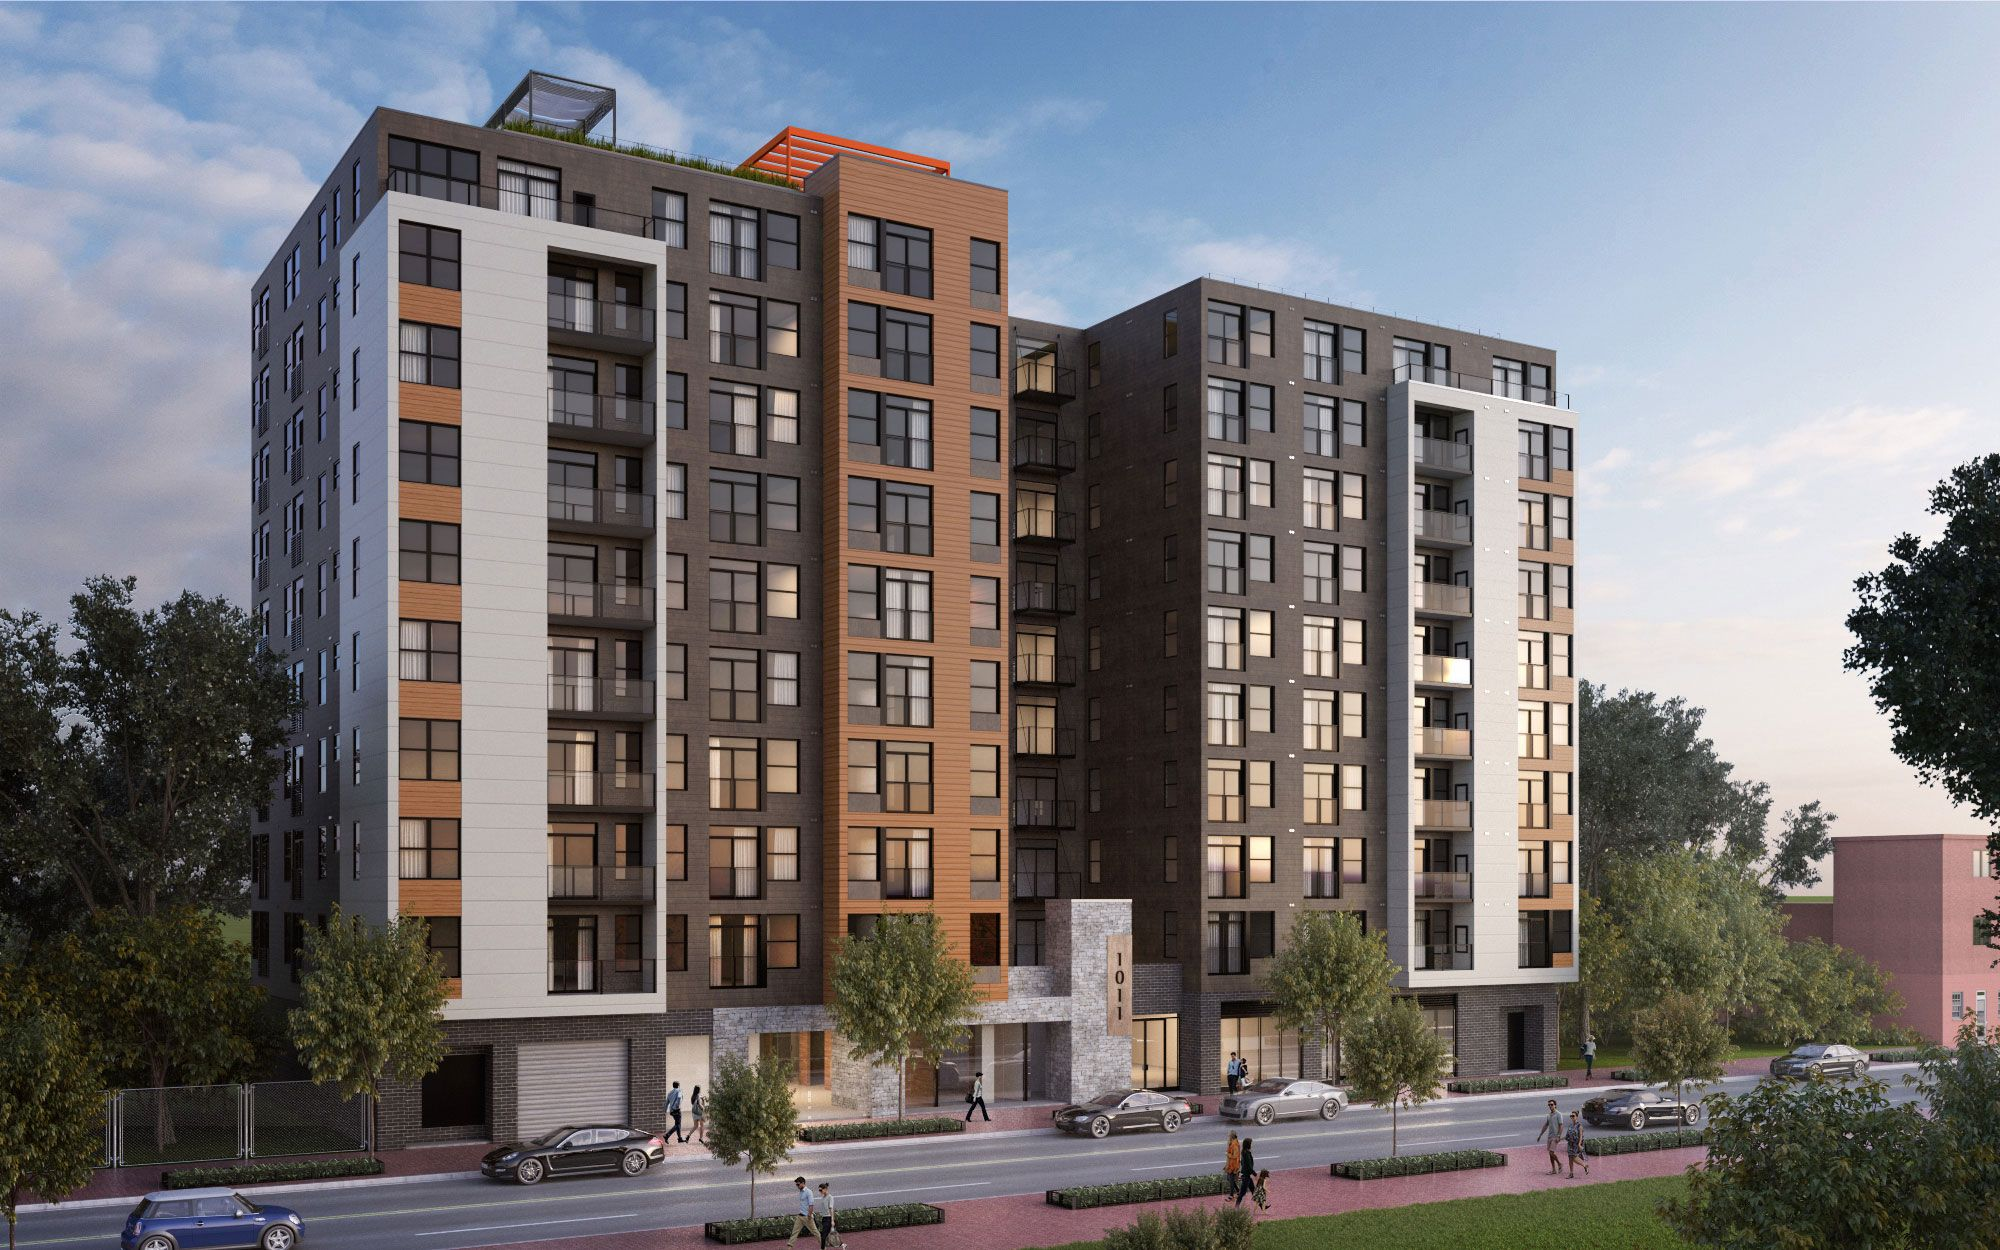 New Modern Apartments In Washington Dc Architecture Building Apartments For Rent